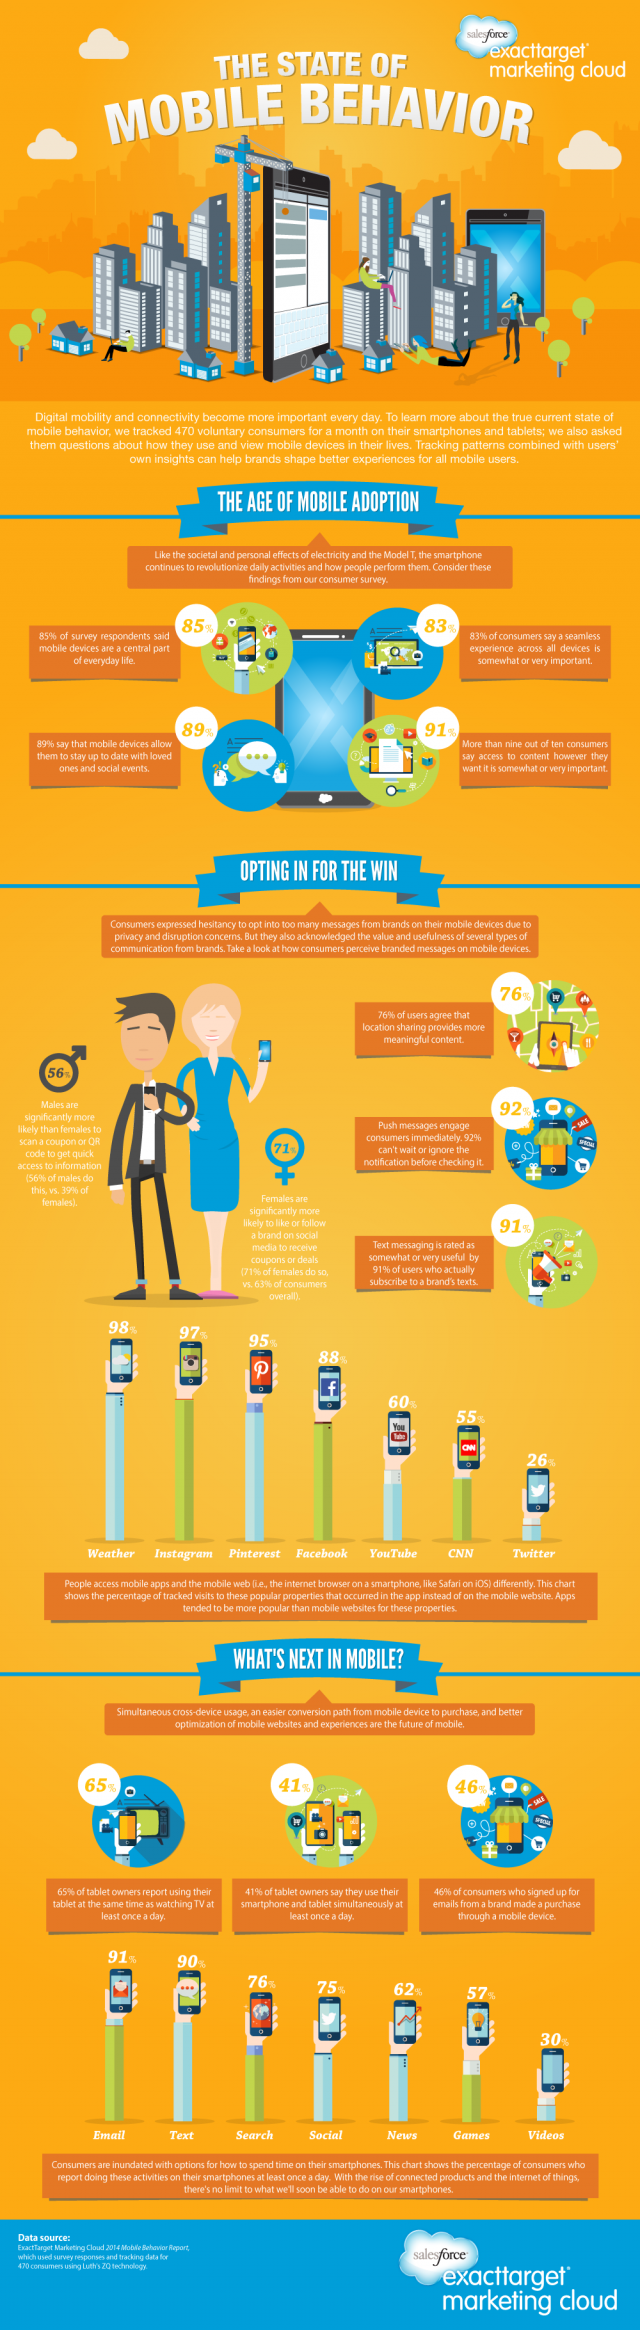 State of Mobile Behavior and Usage Report 2014 [INFOGRAPHIC]